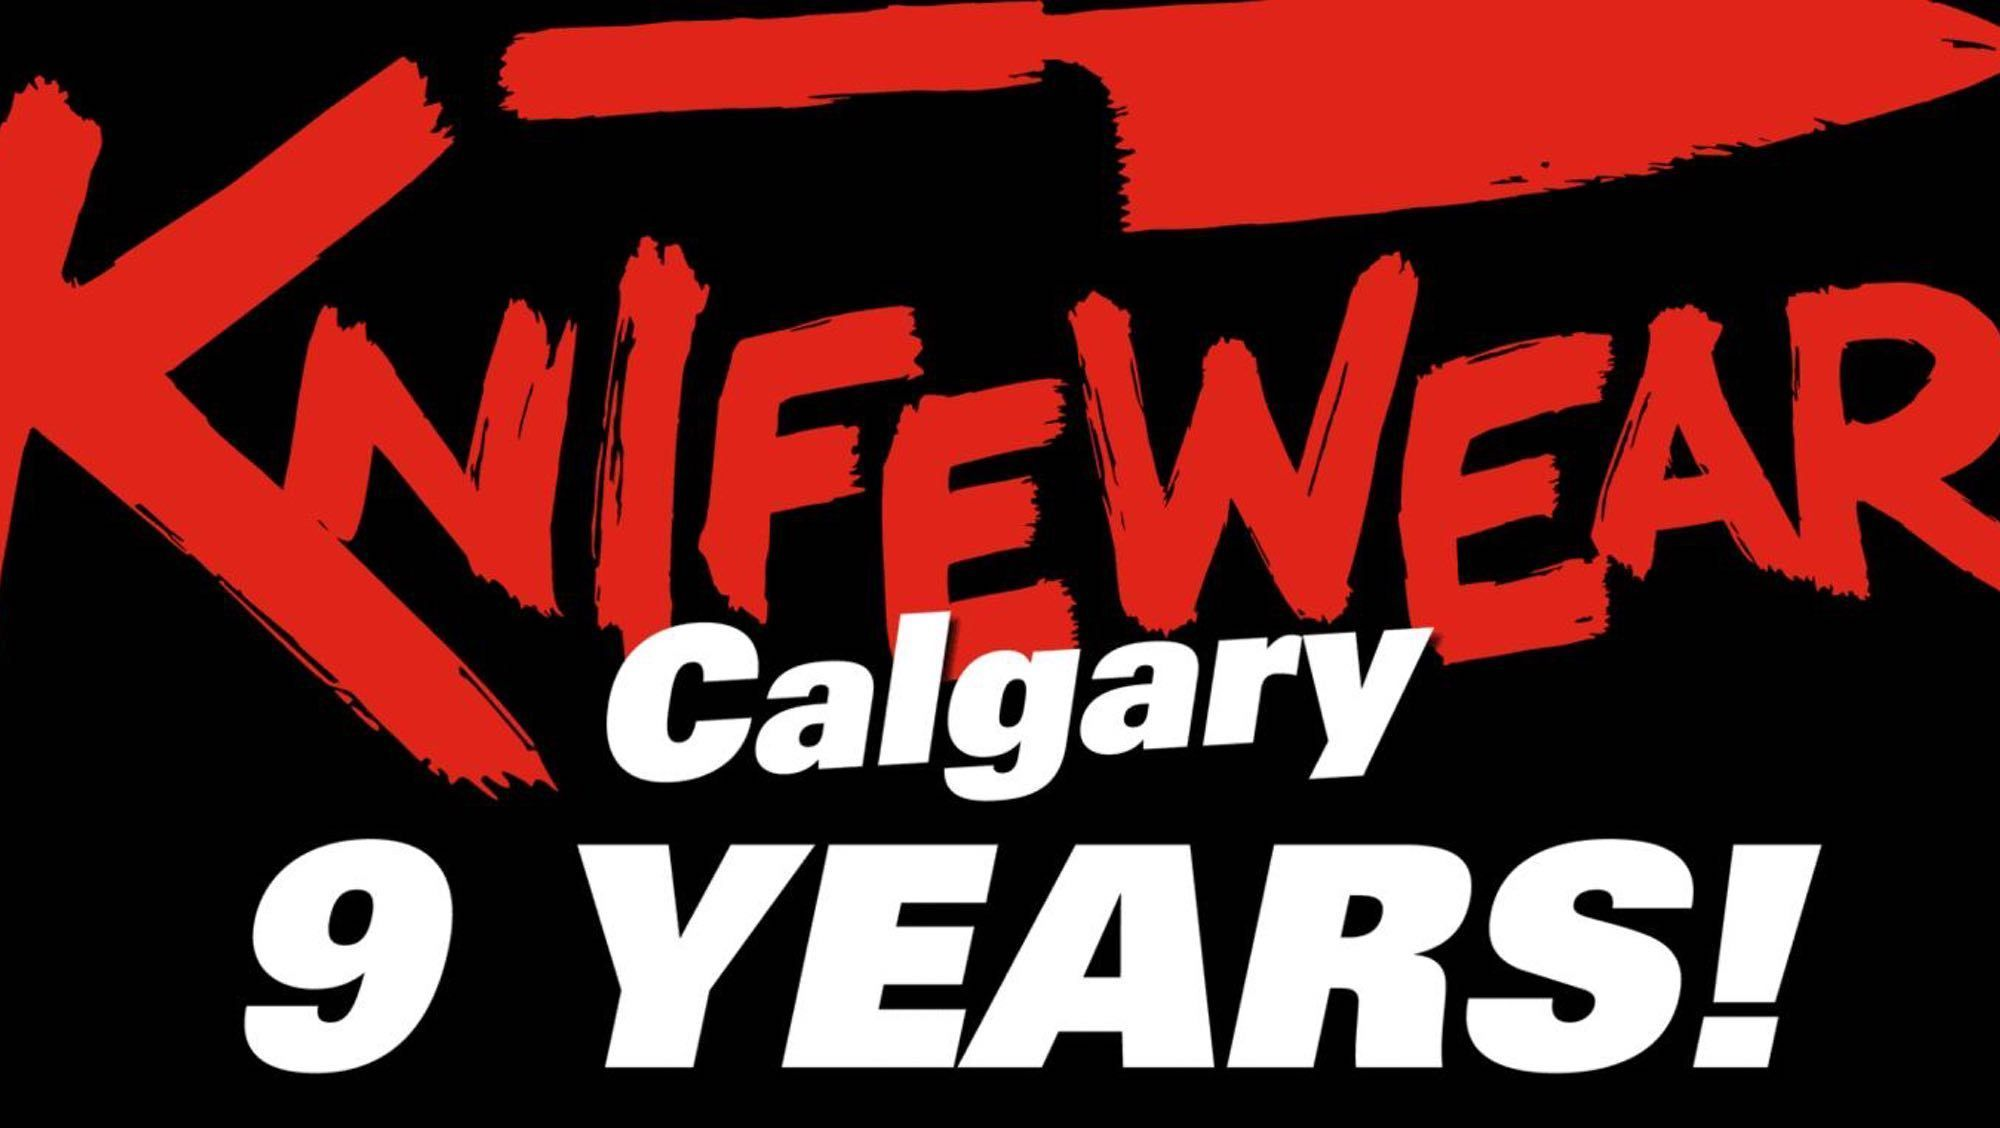 Knifewear Calgary opened today in 2009